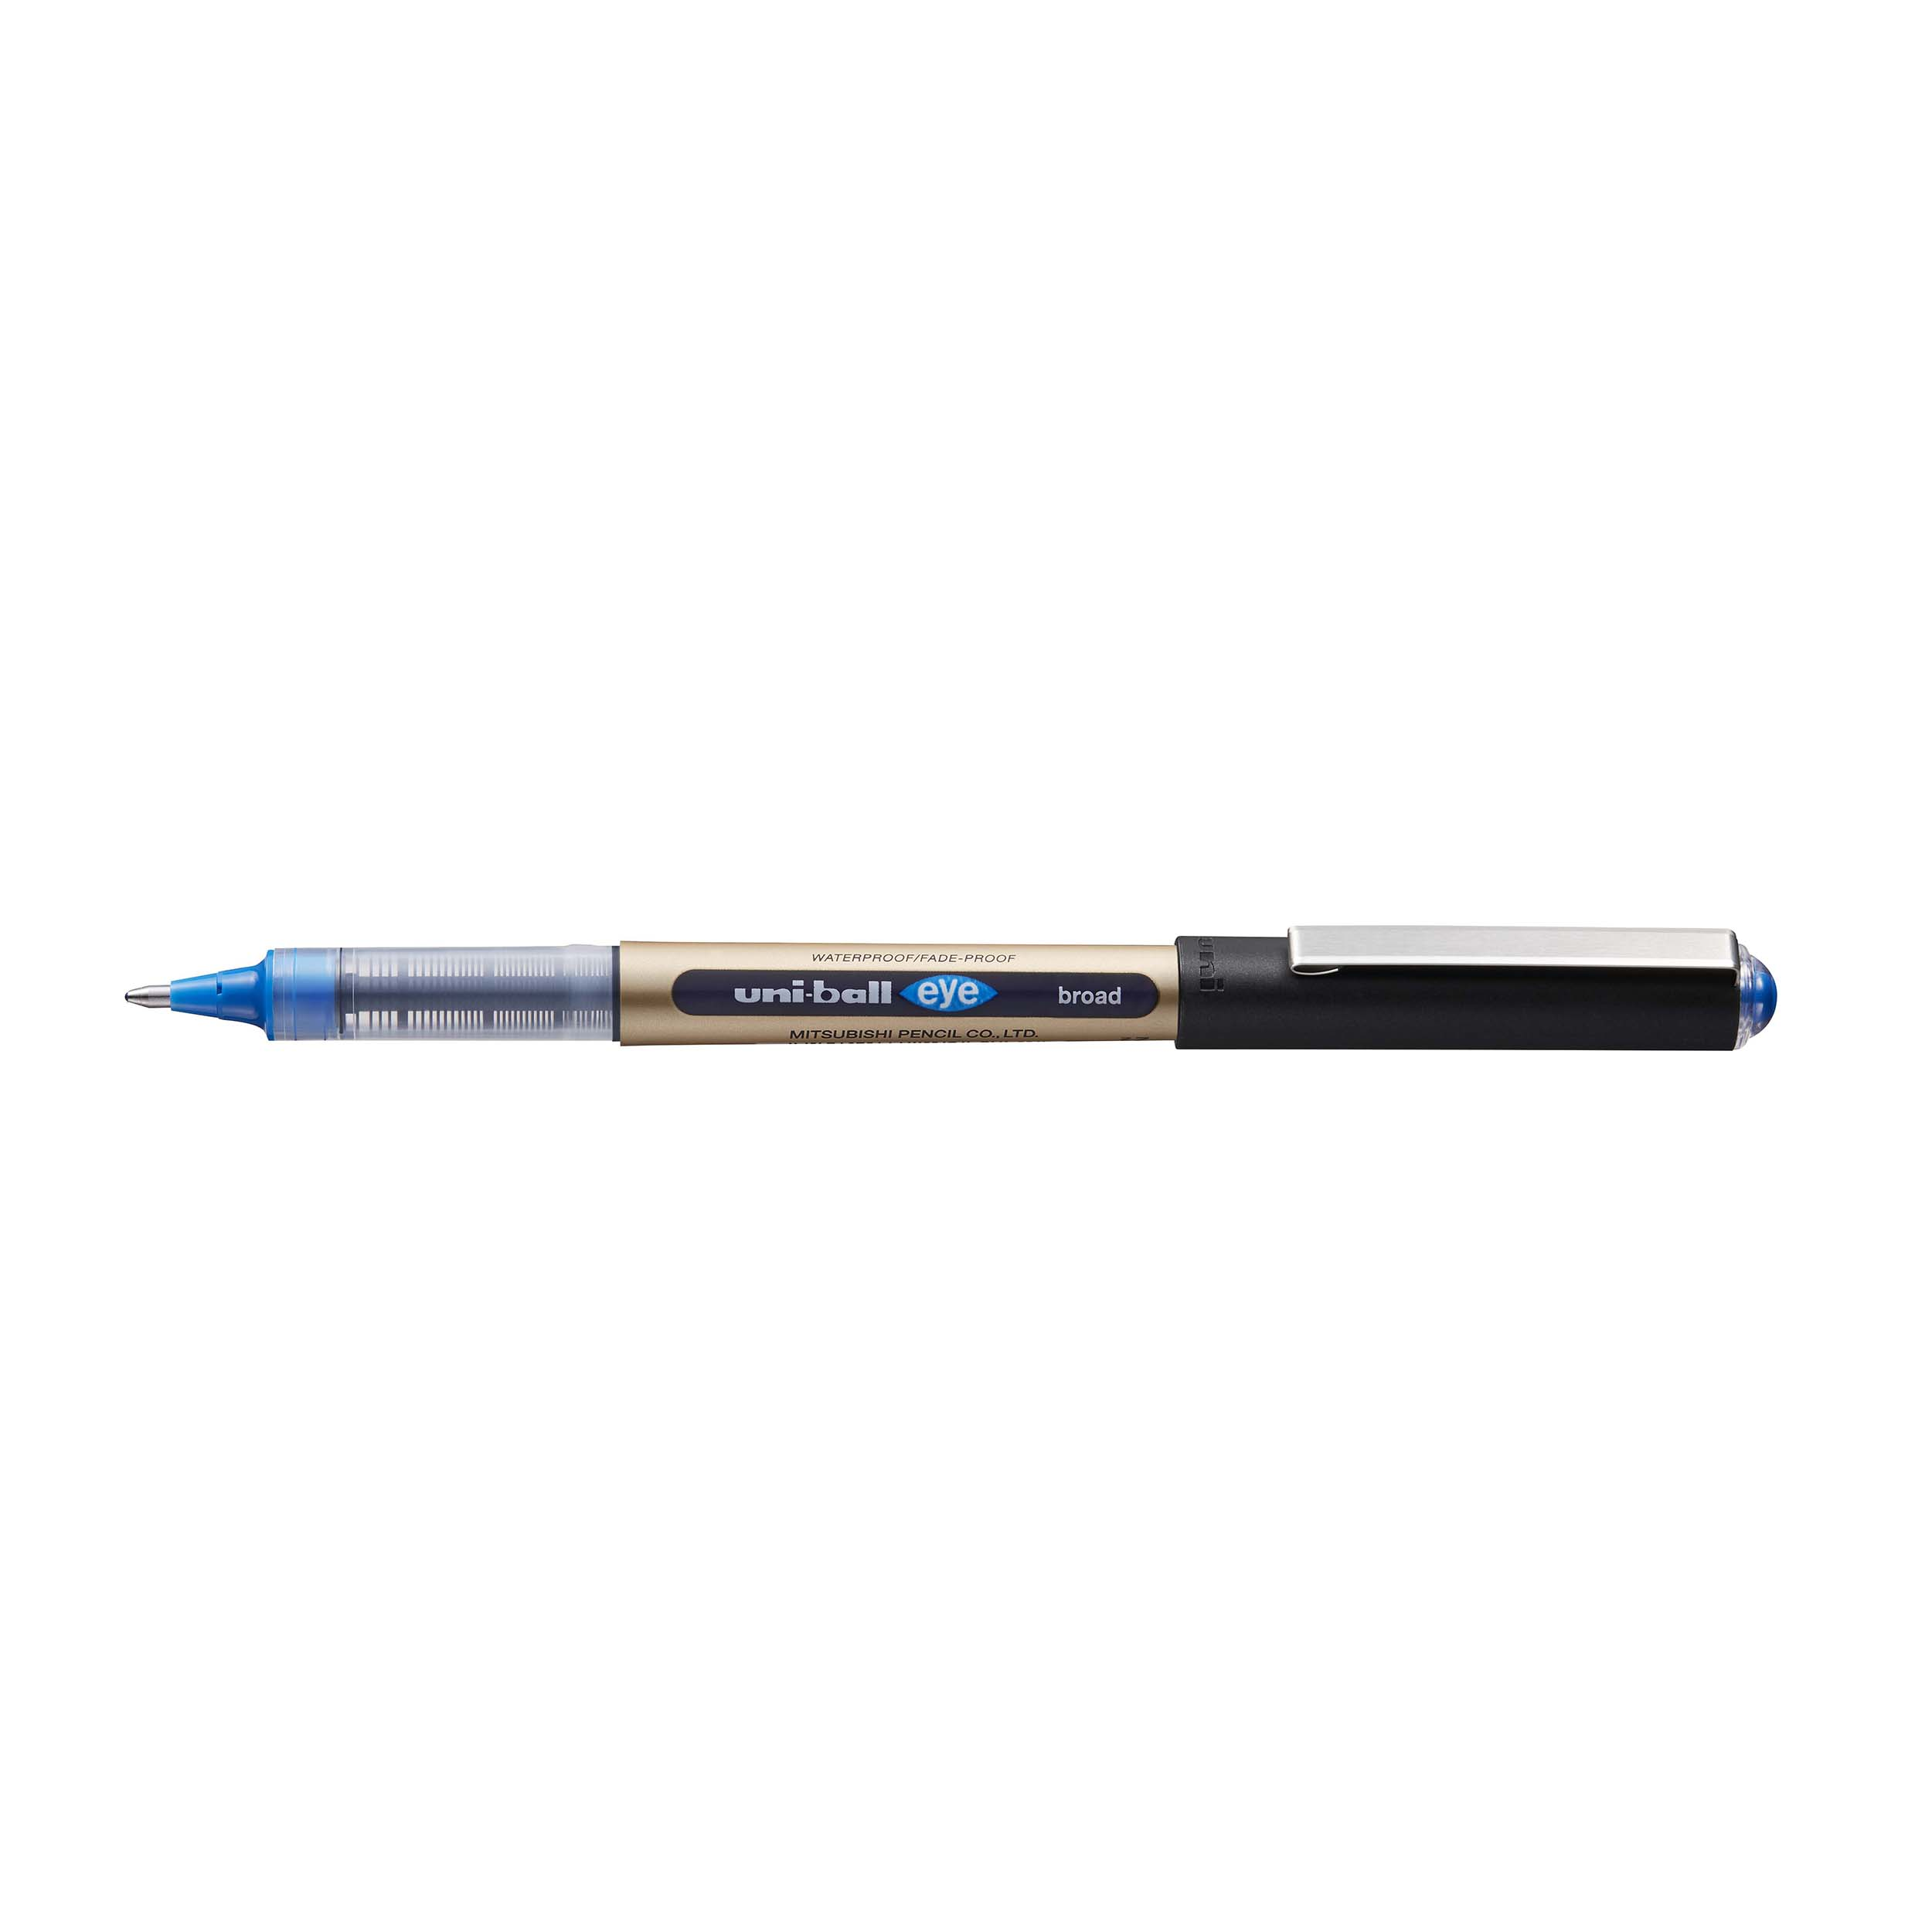 Uni-ball UB-150-10 Eye Broad Rollerball Pen 1.0mm Tip Blue Ref 246967000 [Pack 12]